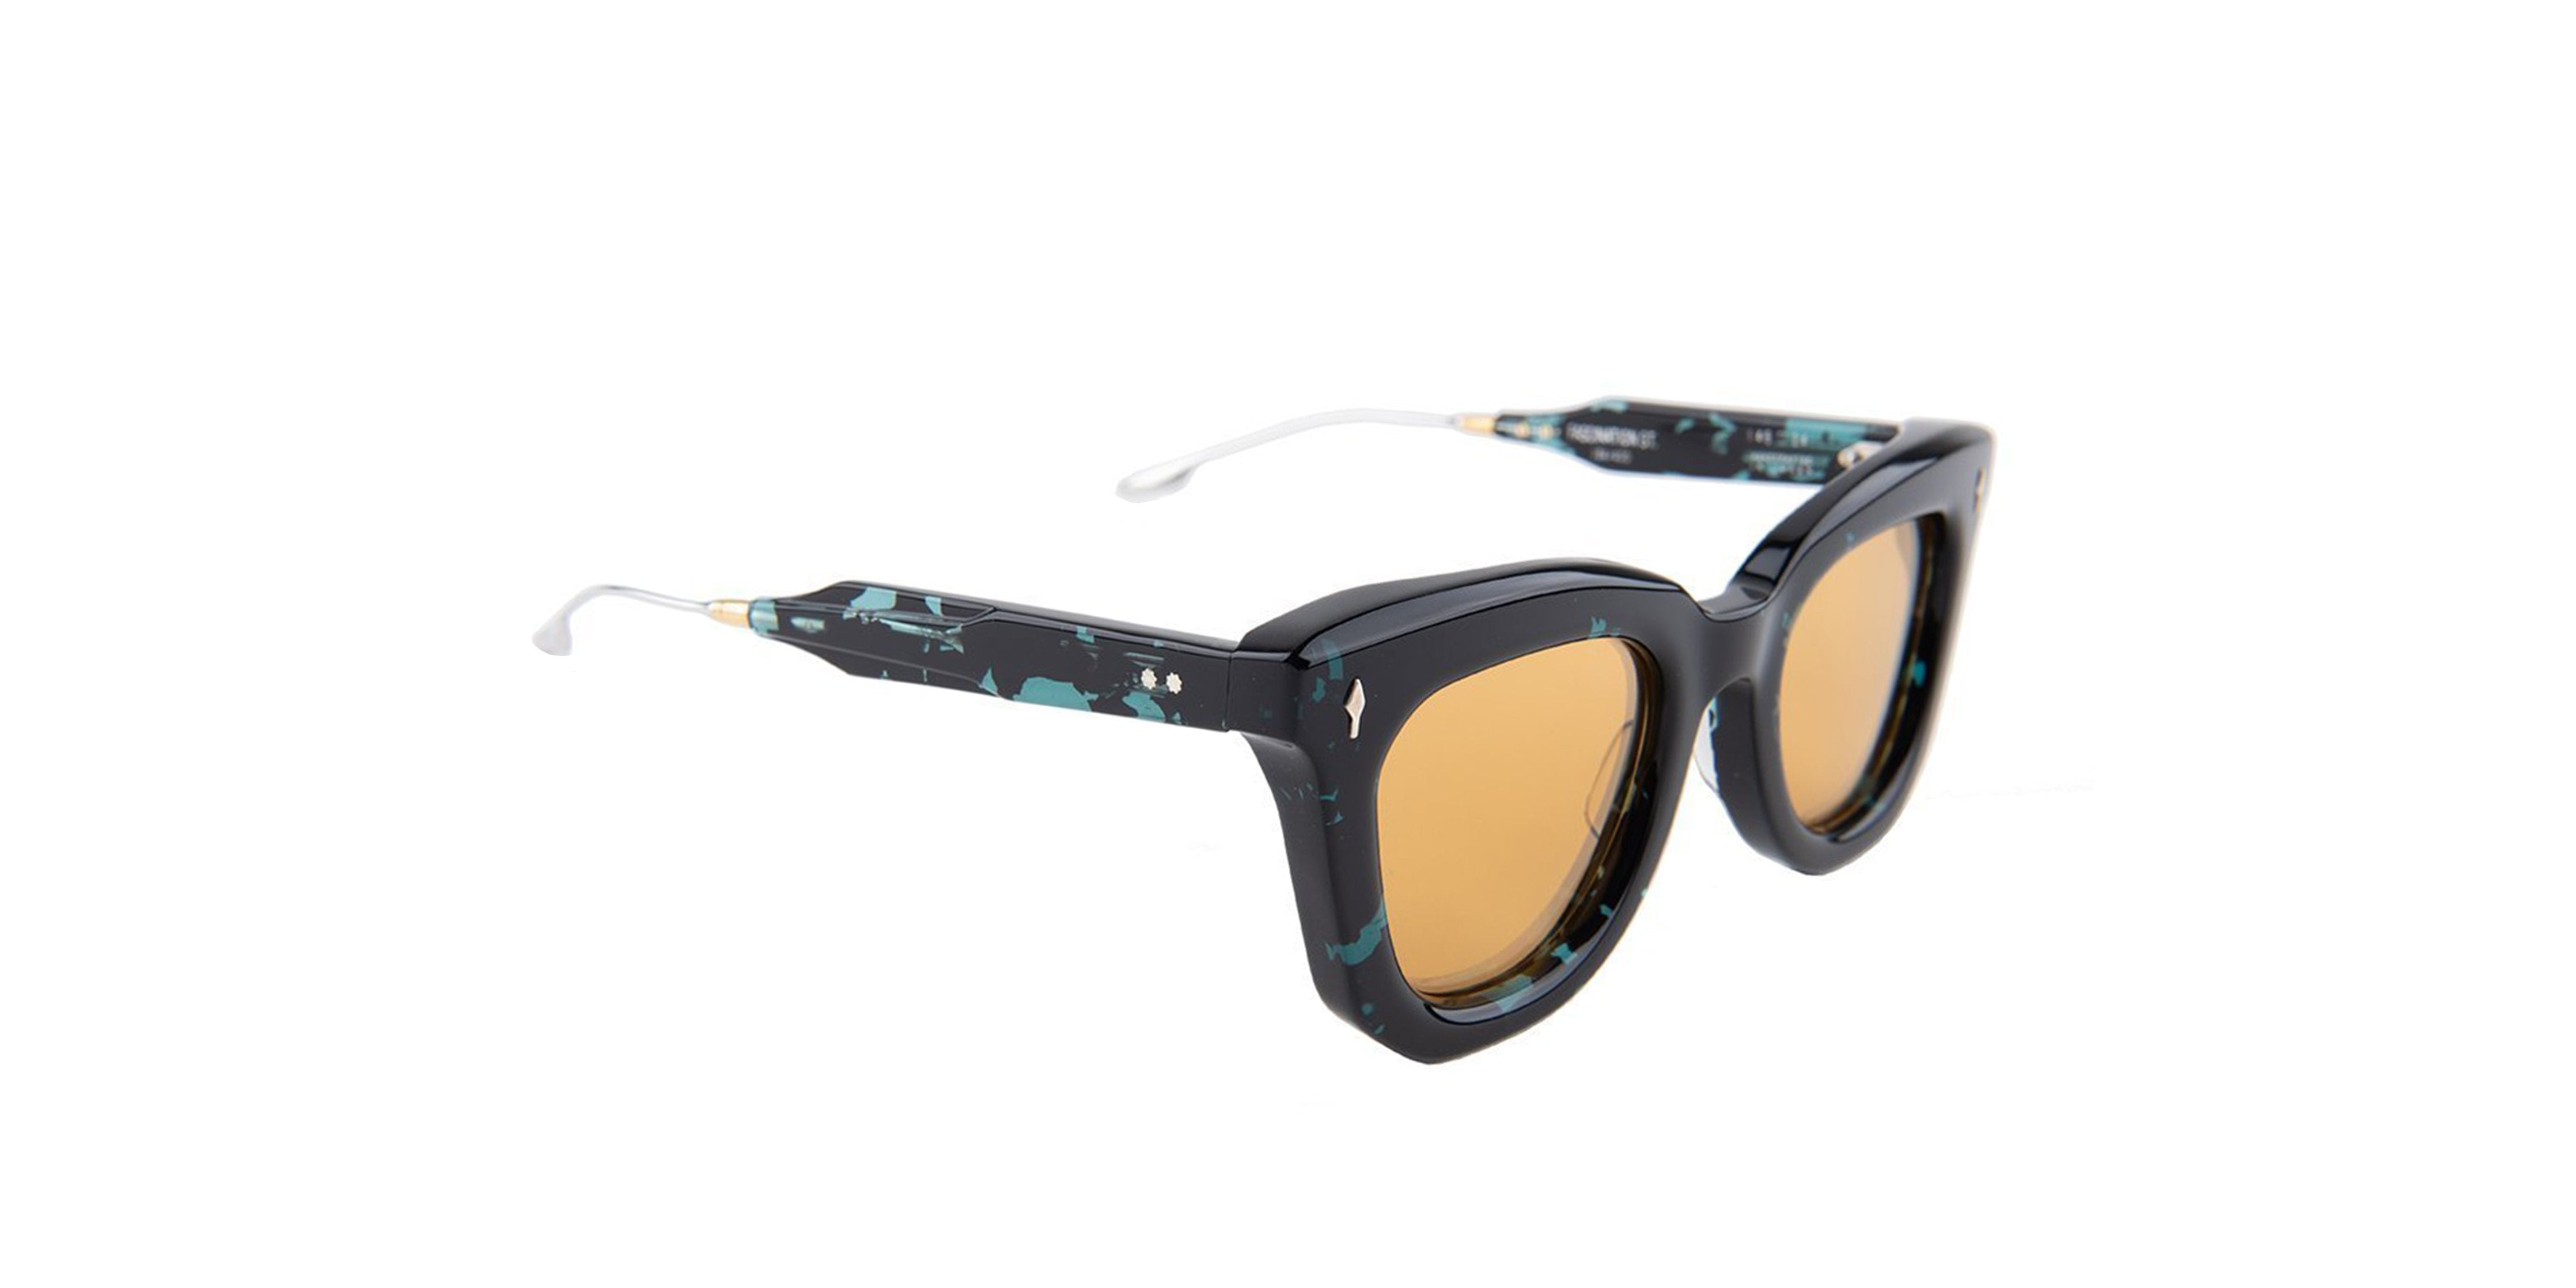 Jacques Marie Mage - Fascination Black/Gold Mirror Rectangular Women Sunglasses - 46mm-Sunglasses-Designer Eyes